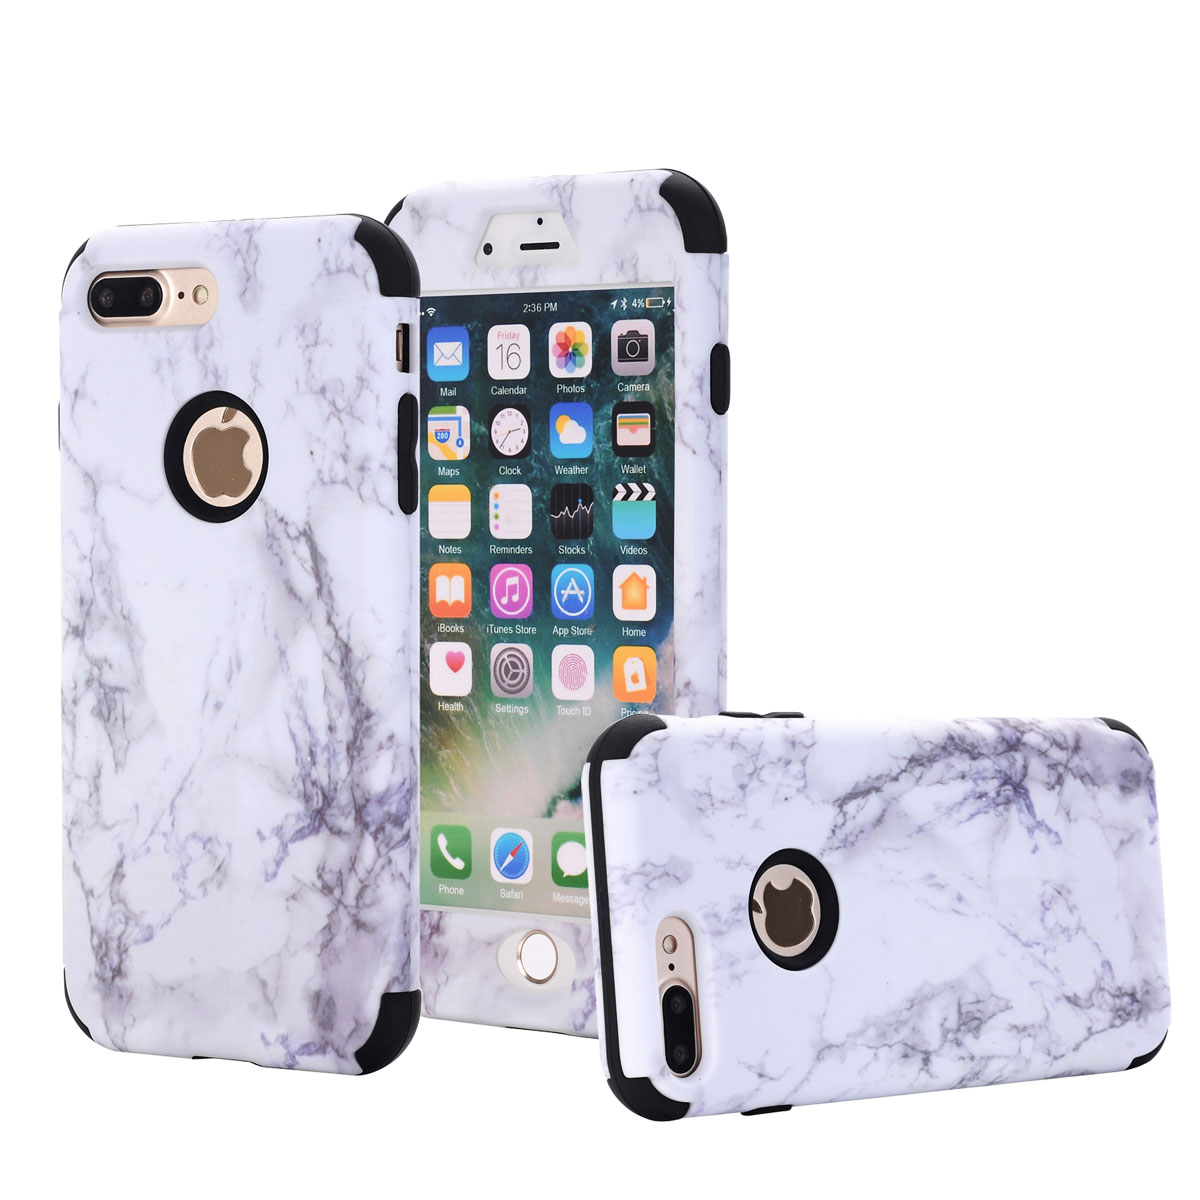 san francisco 7ed12 74f66 Details about Hybrid Rugged Granite Marble Protective Hard Cover Case Cute  For iPhone 7 8 Plus